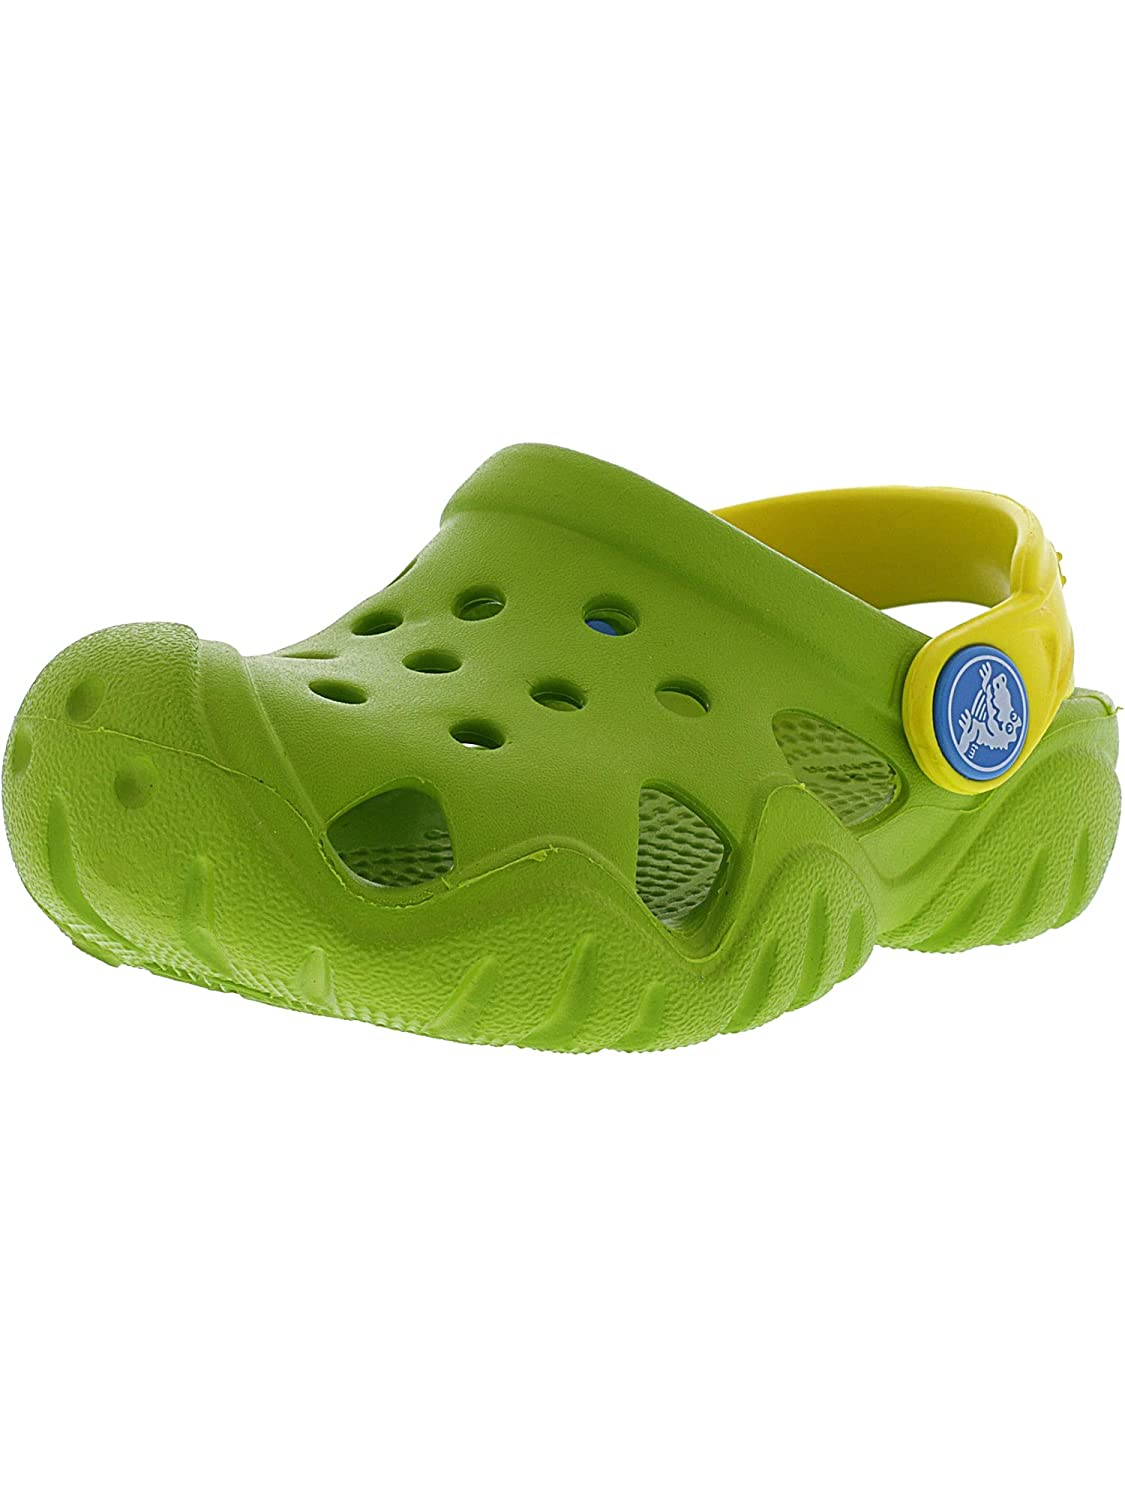 18826256a66b8 Crocs Kids Swiftwater Clog Ltd Volt Green/Lemon Clogs - 12M: Crocs ...